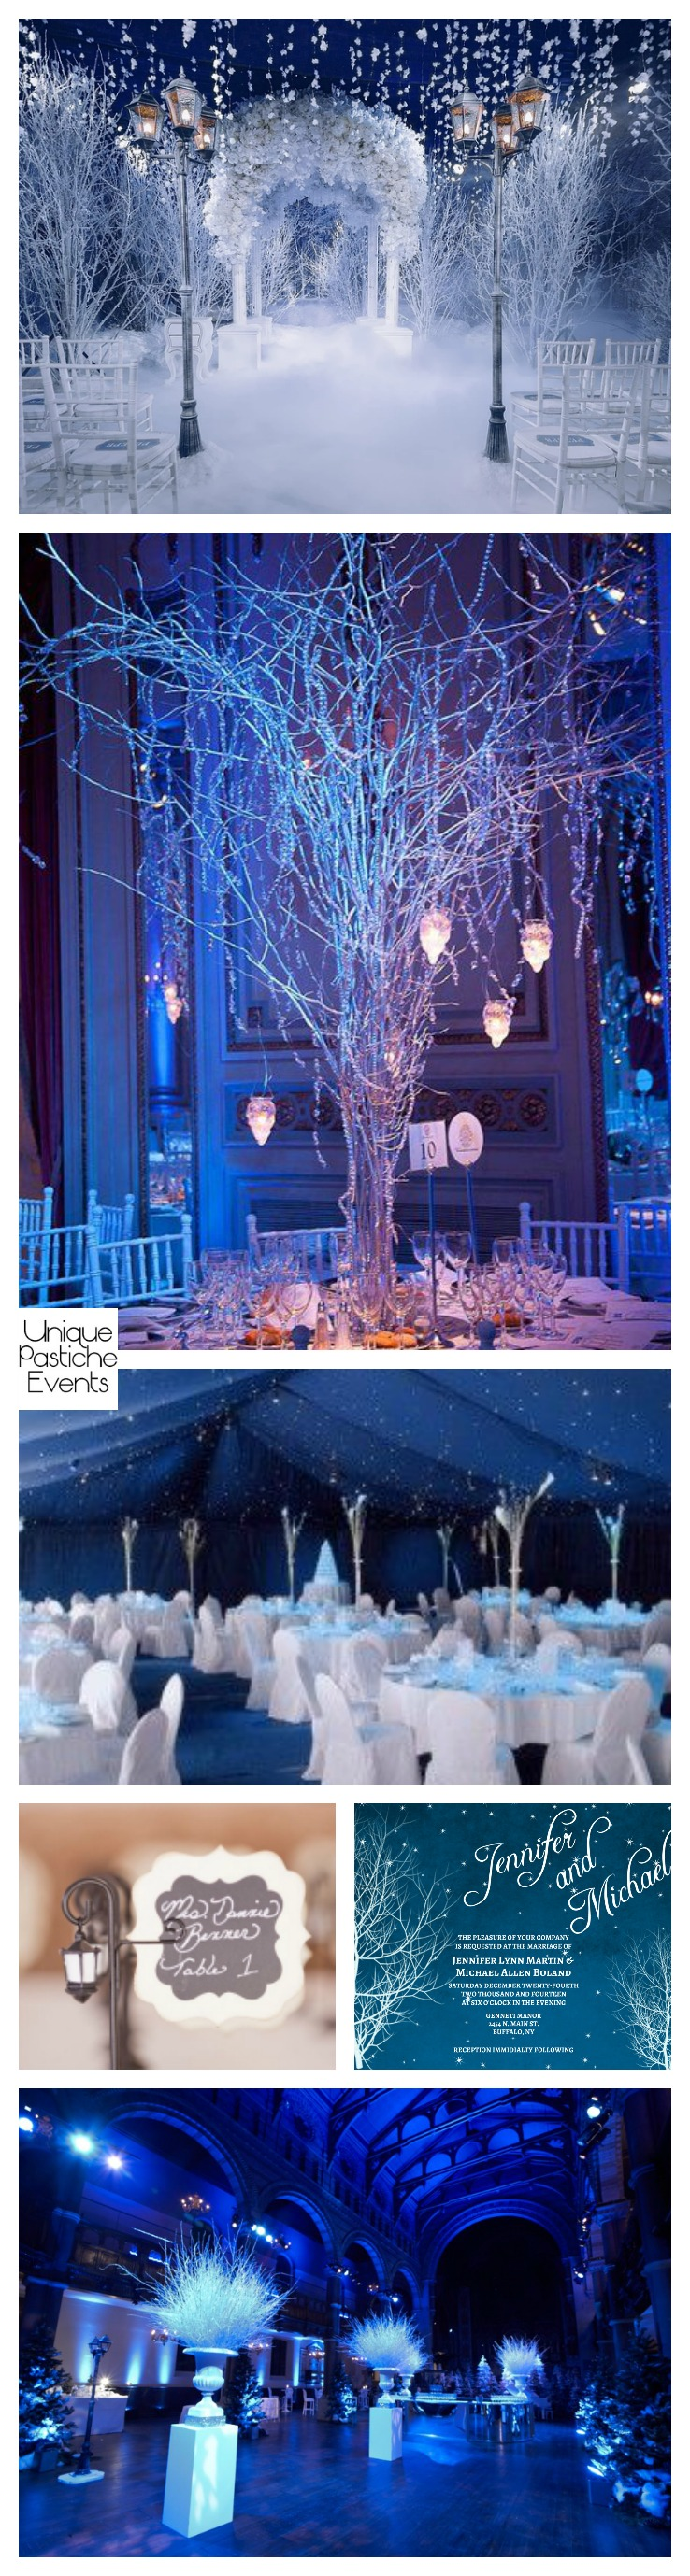 A Wedding on a Snowy Winter Night Read all the details of this wedding inspiration here: https://uniquepasticheevents.com/2016/12/14/a-wedding-on-a-snowy-winter-night/